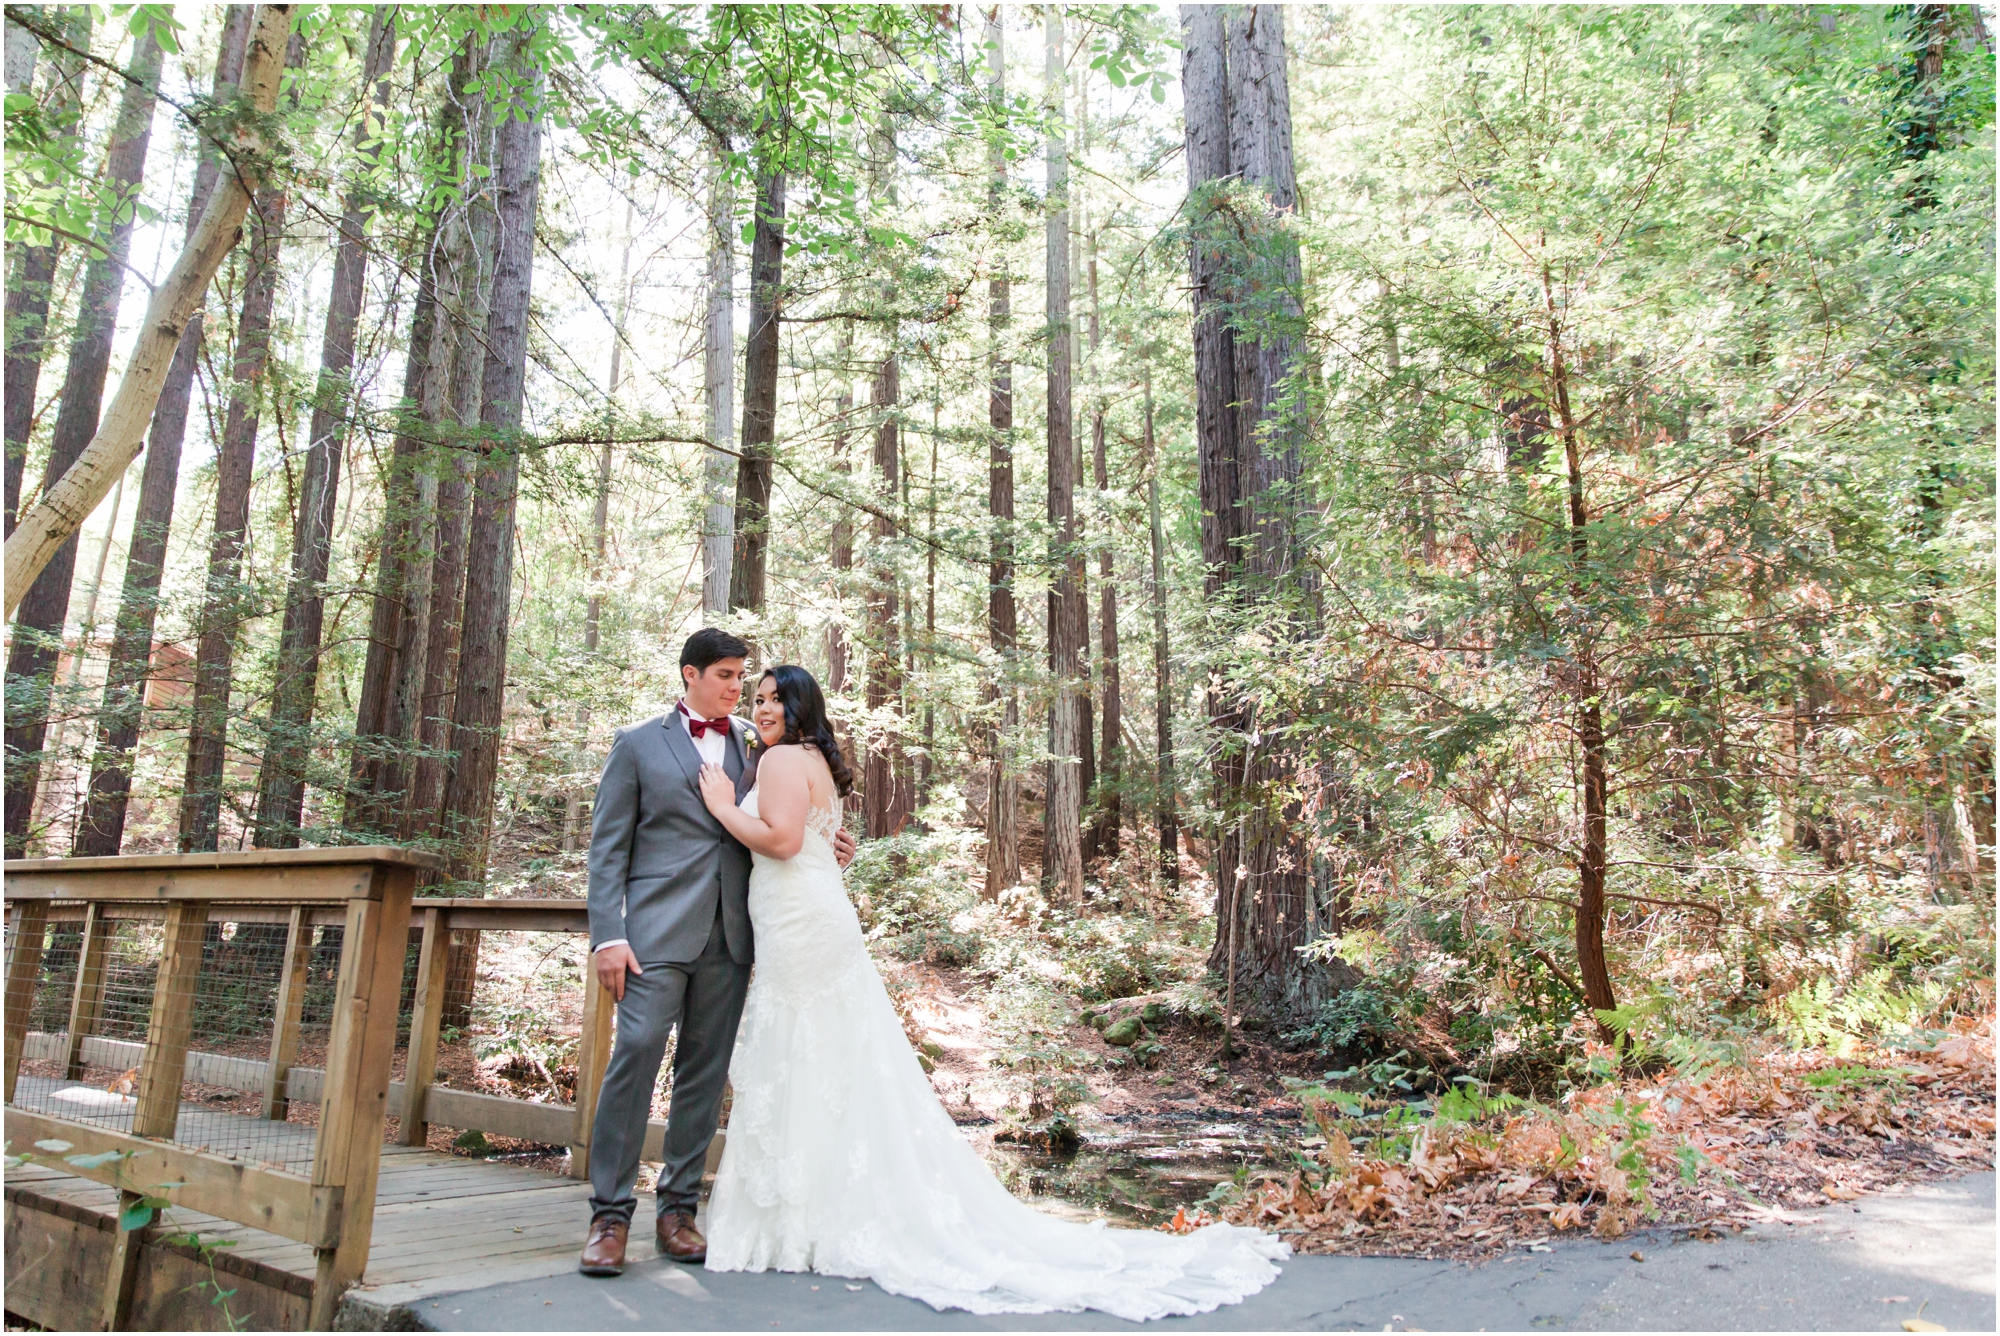 Sanborn Park Saratoga wedding pictures by Briana Calderon Photography_0115.jpg